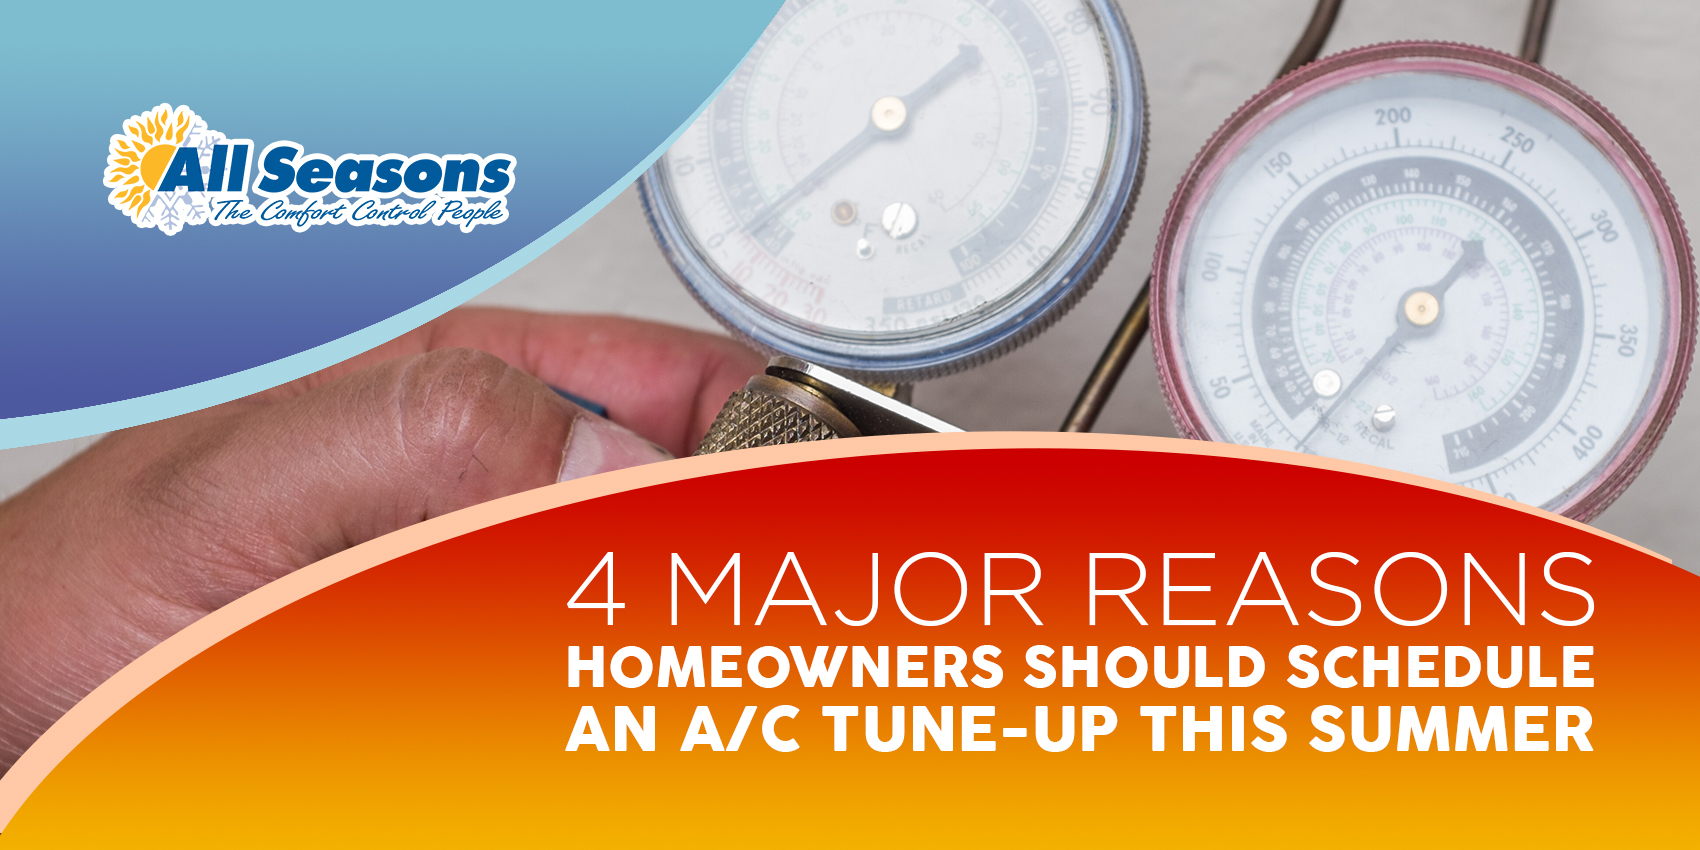 4 Major Reasons Homeowner Should Schedule an A/C Tune-up this Summer